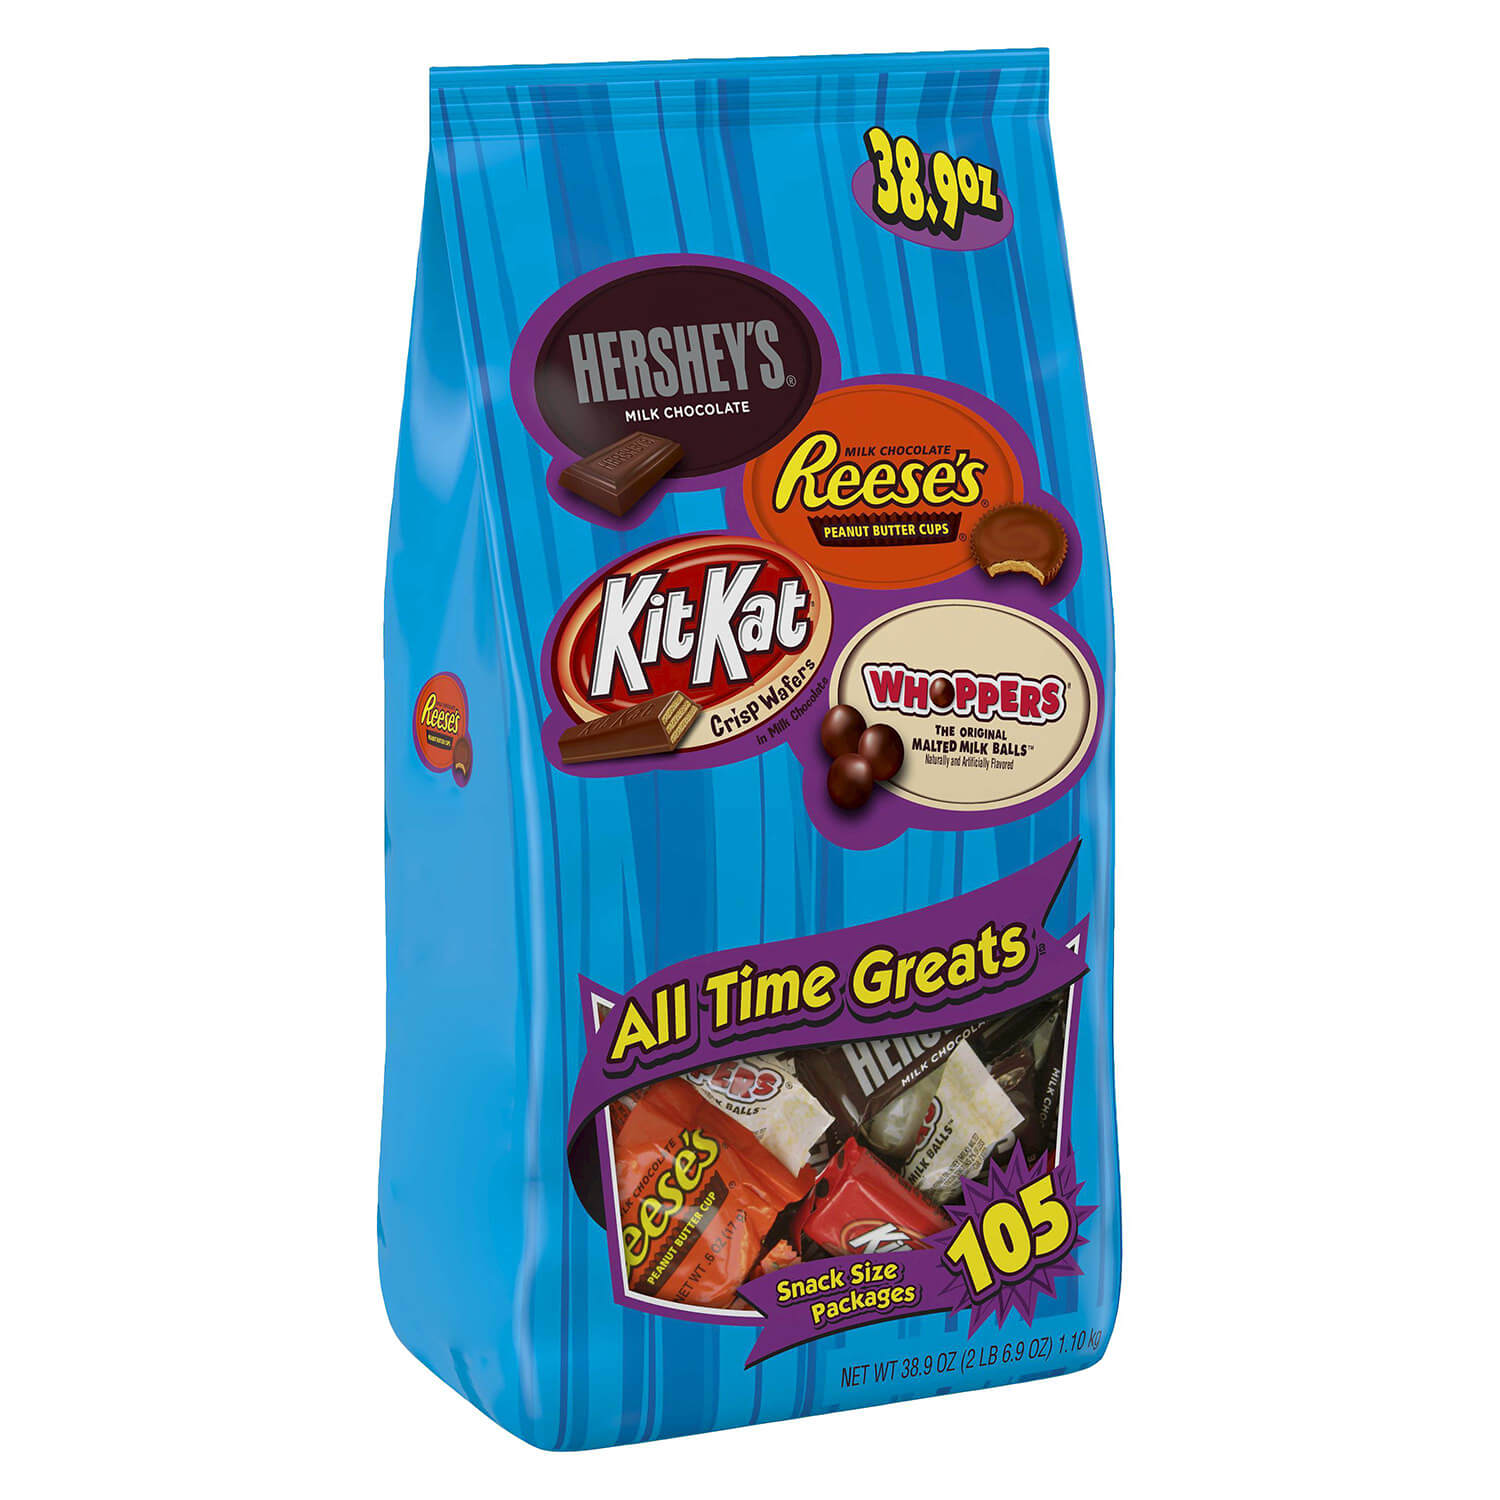 Hersey's All Time Greats Snack Size Assortment - 2.43 lbs